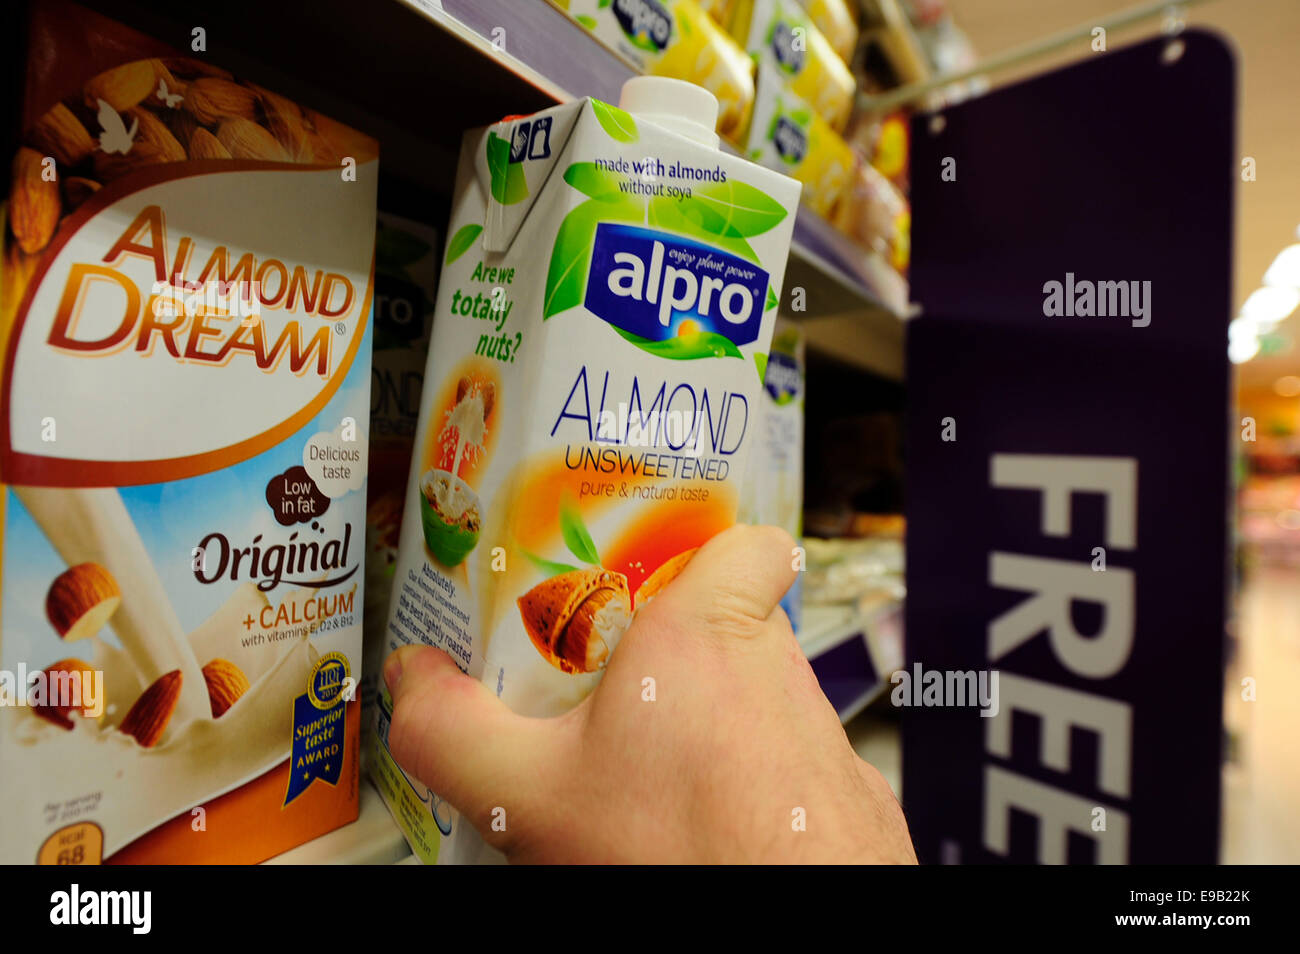 this is a alpro v product been taken from the shelf (Newscast)(Model Released) - Stock Image